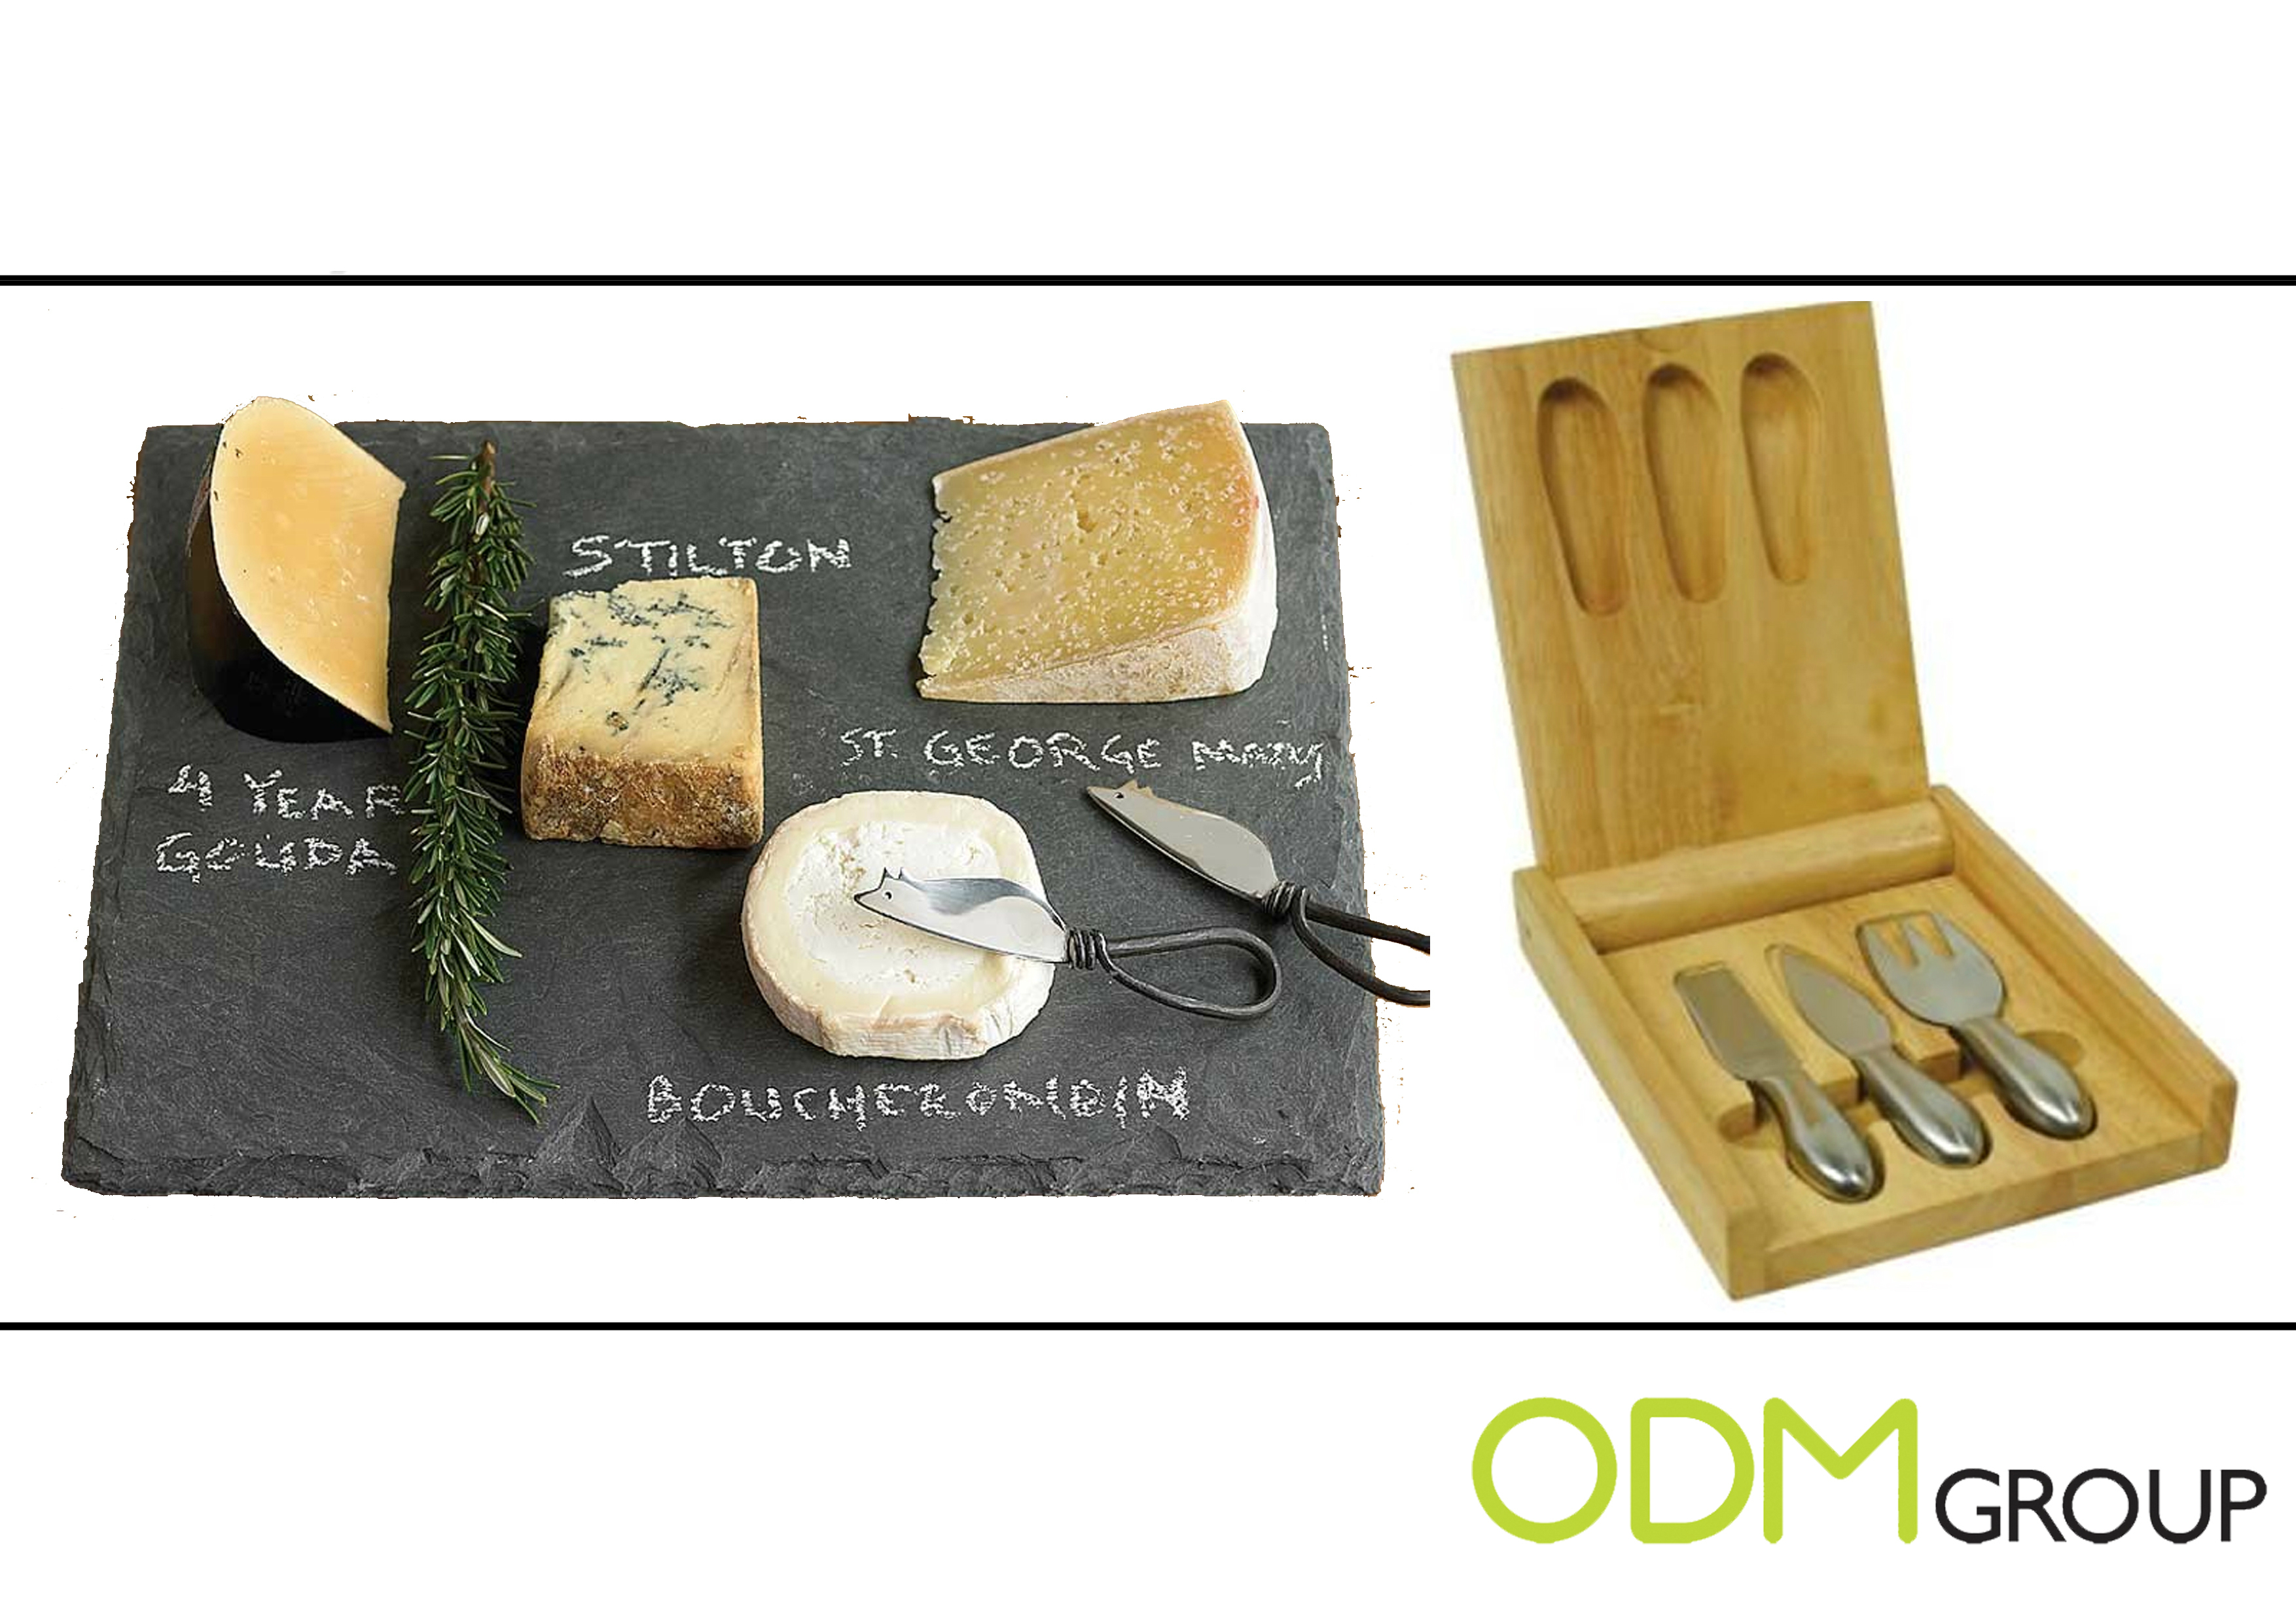 Cheese What are you planning for Christmas Promotion?